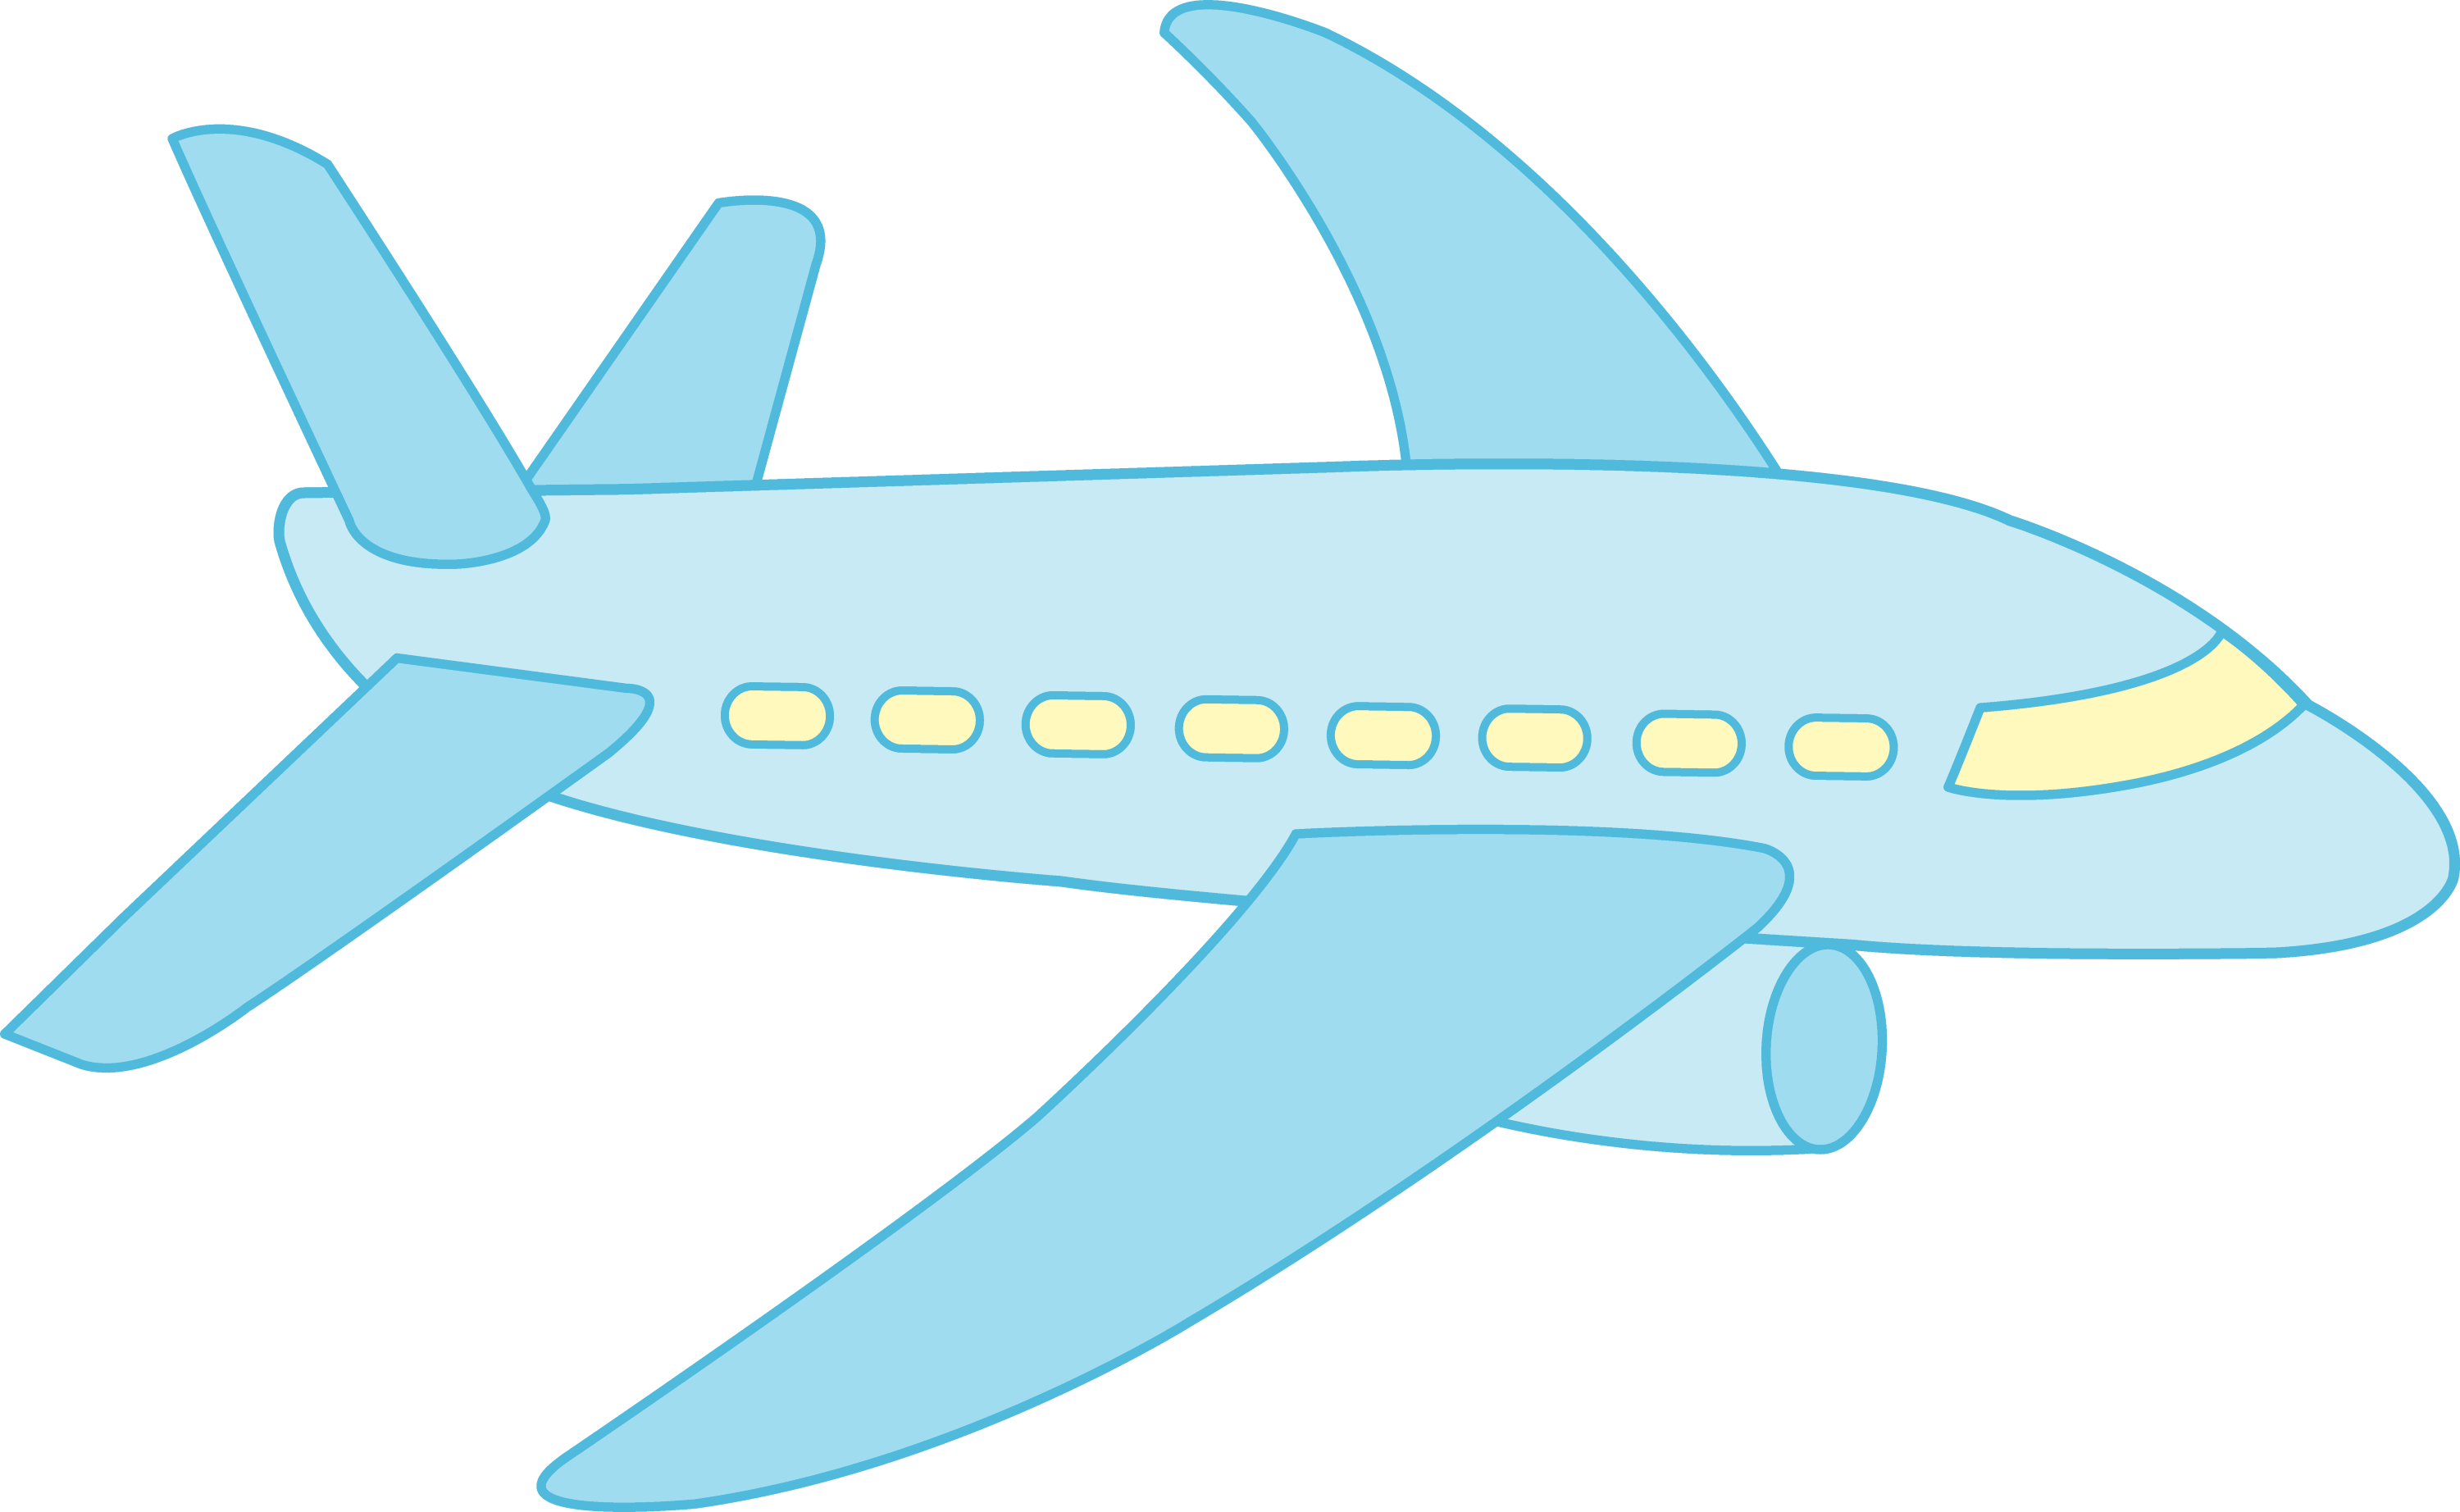 cartoon airplane clipart - photo #34